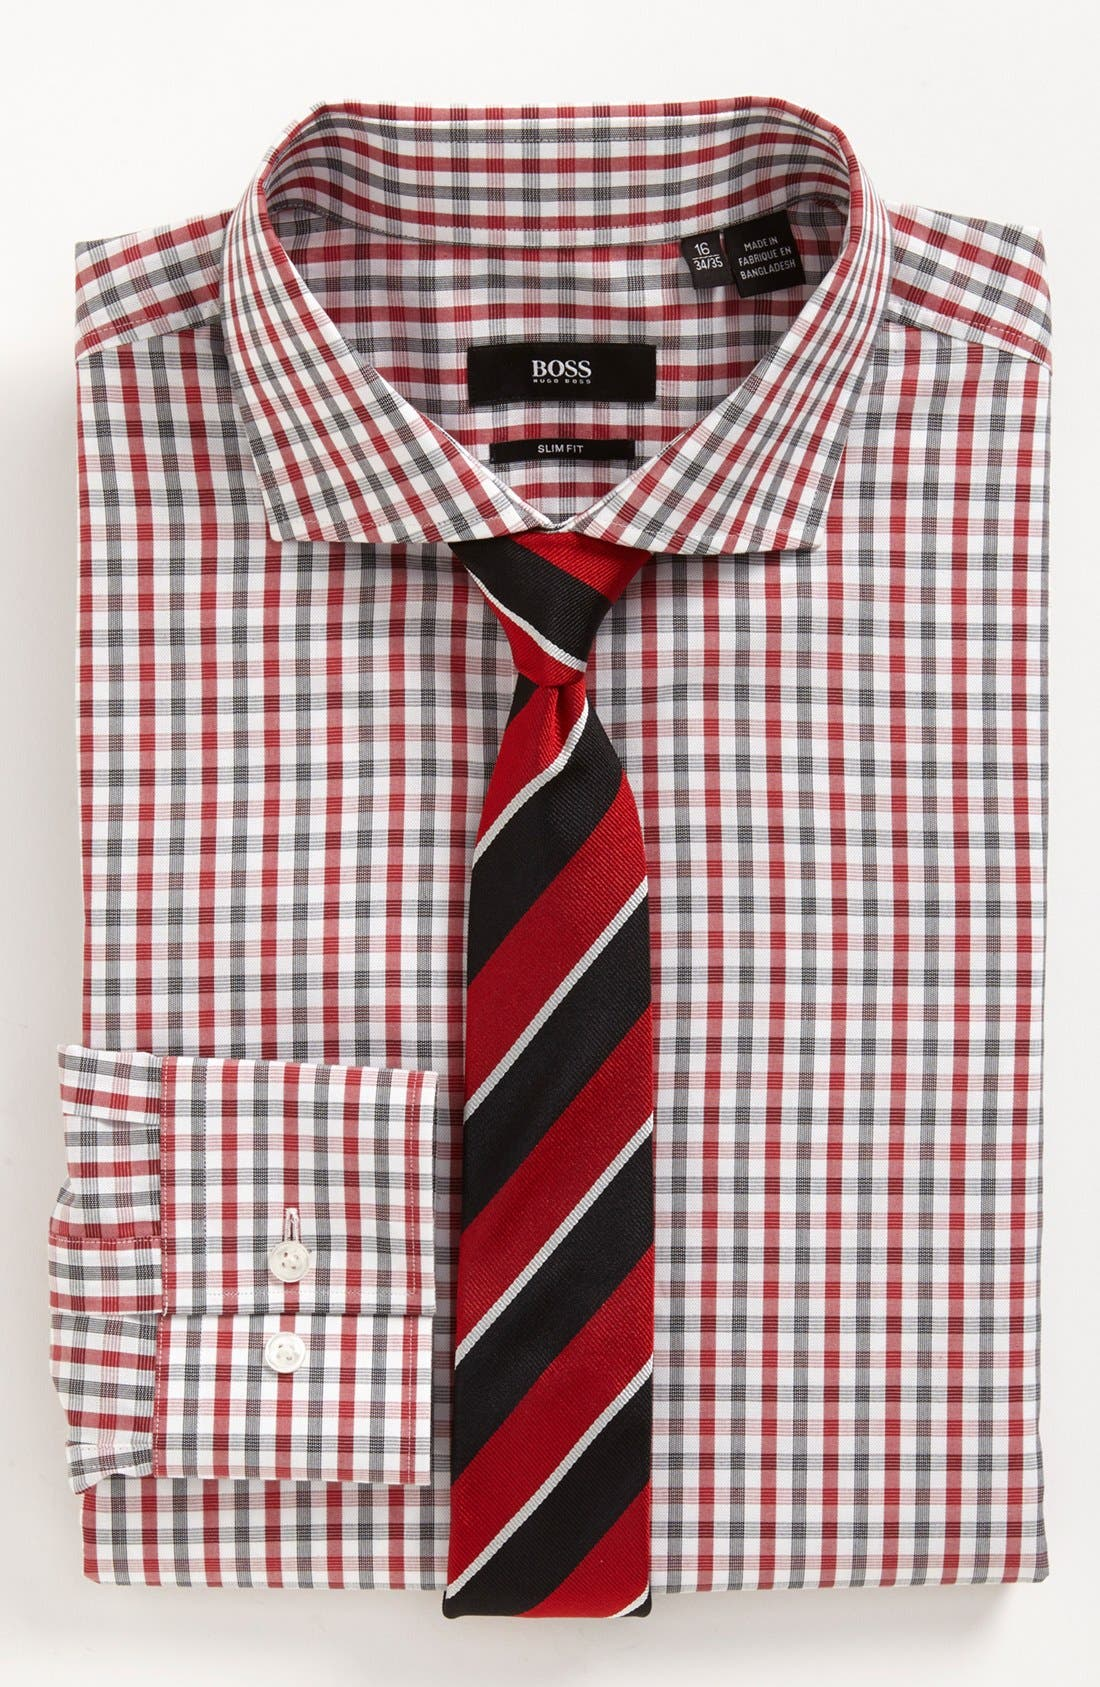 BOSS Black Dress Shirt & Tie, Main, color, 620